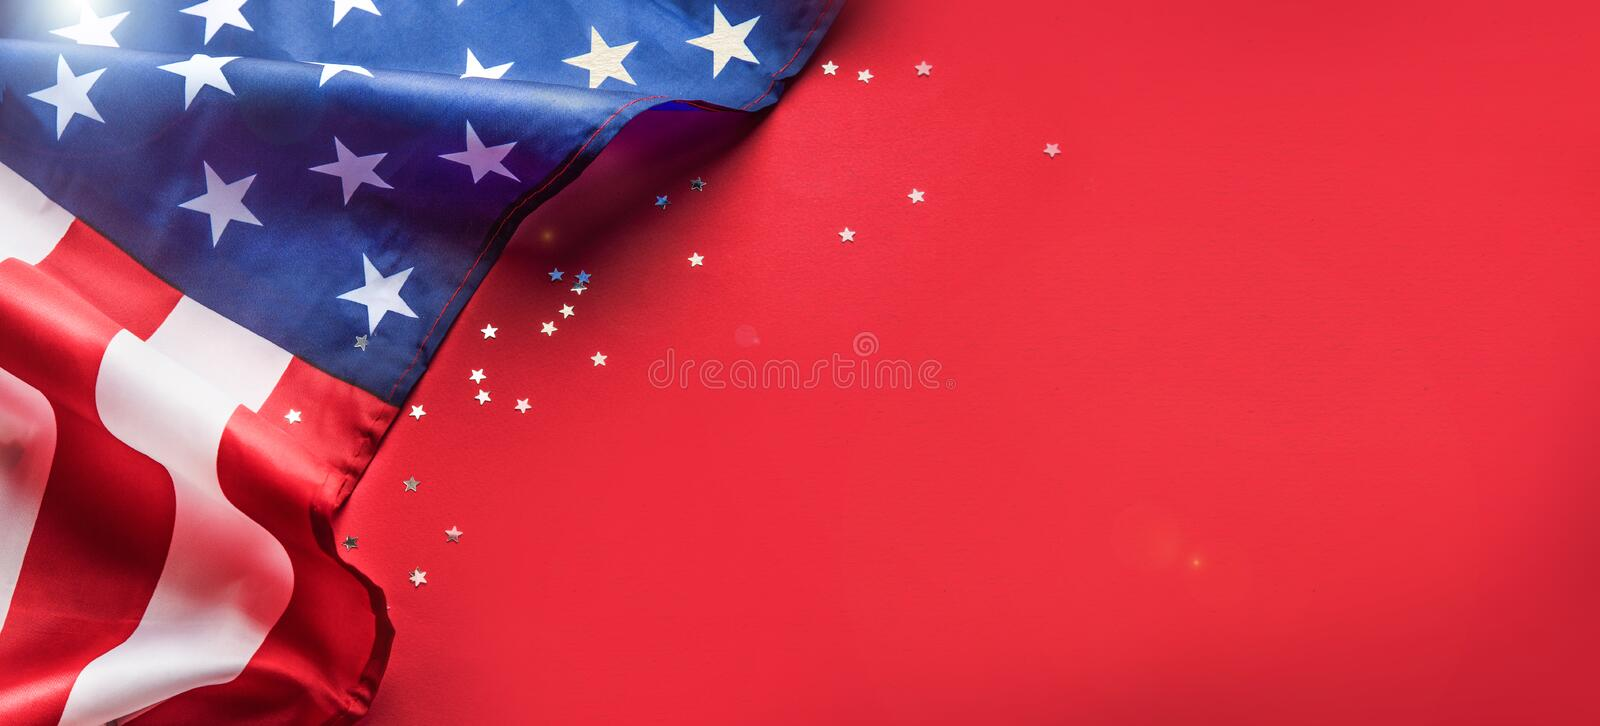 Celebrating Independence Day. United States of America USA flag background for 4th of July. Copyspace royalty free stock photos